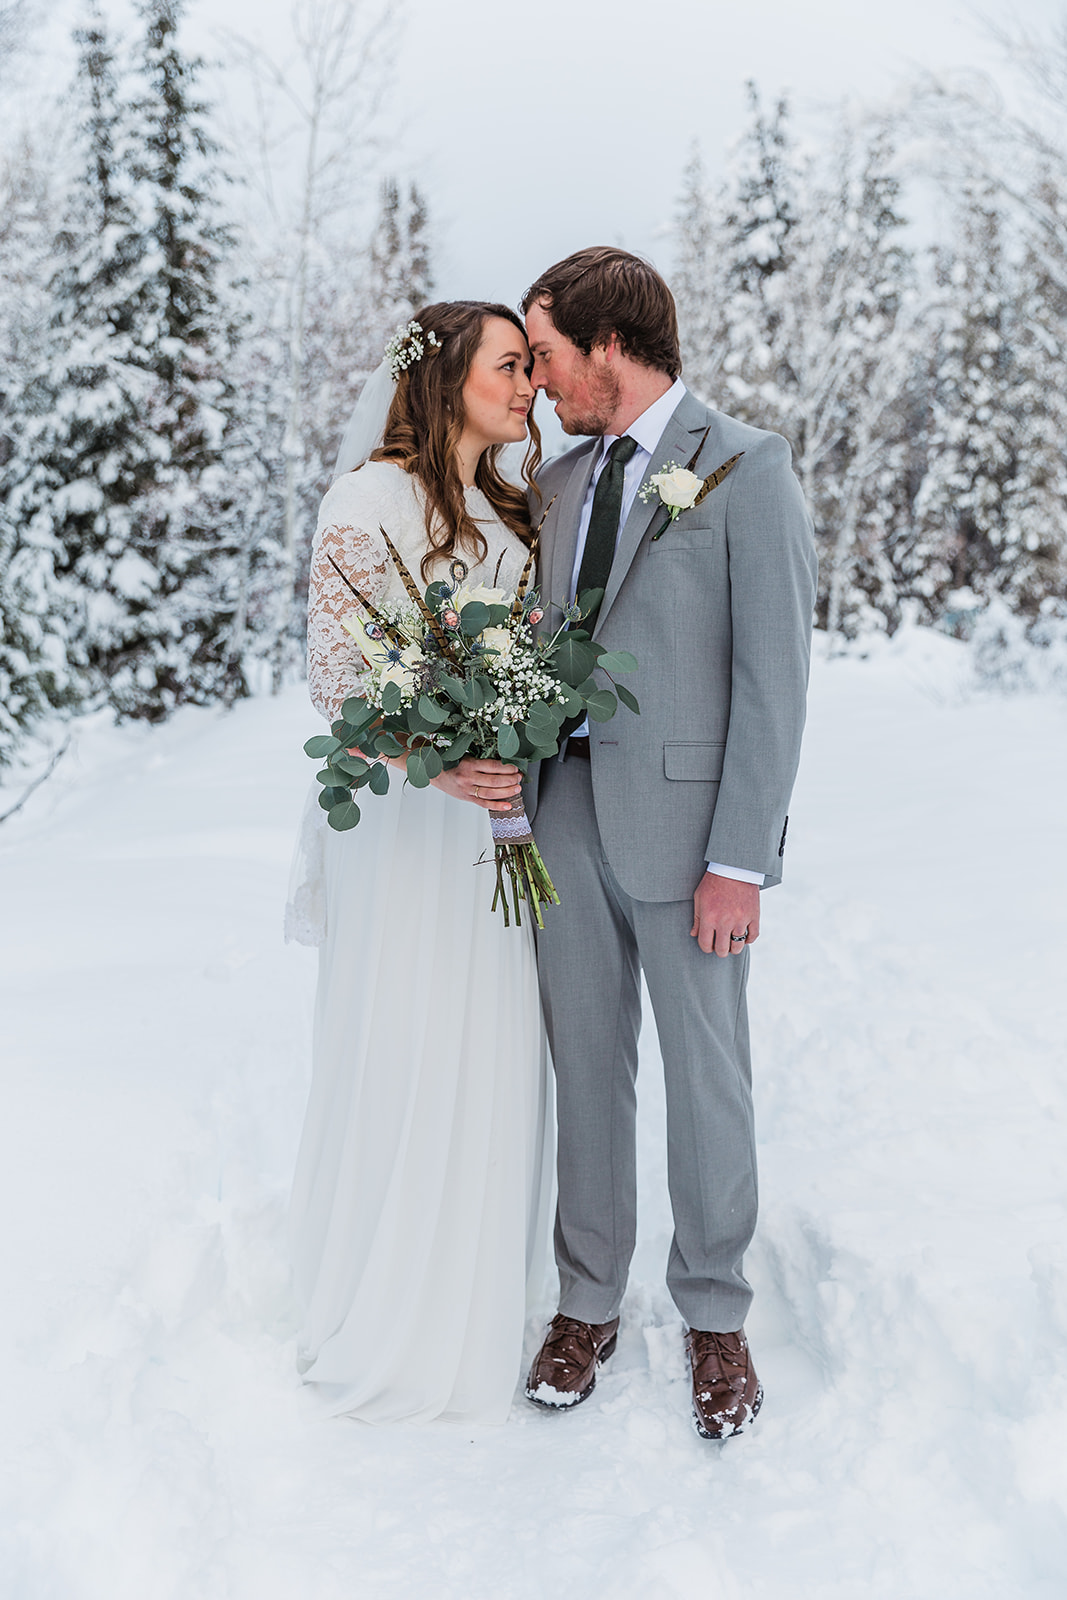 looking into each others eyes long sleeved lace wedding dress not full sleeves simple white boutonniere boutonniere inspiration minimal wedding colors winter formals greenery in winter bouquet bella alder photography professional photographer #winterwedding #formals #tony'sgrove #cachevalley #snowcoveredtrees #bellaalderphotography #professionalphotographer #winterwonderland #couplegoals #weddingattire